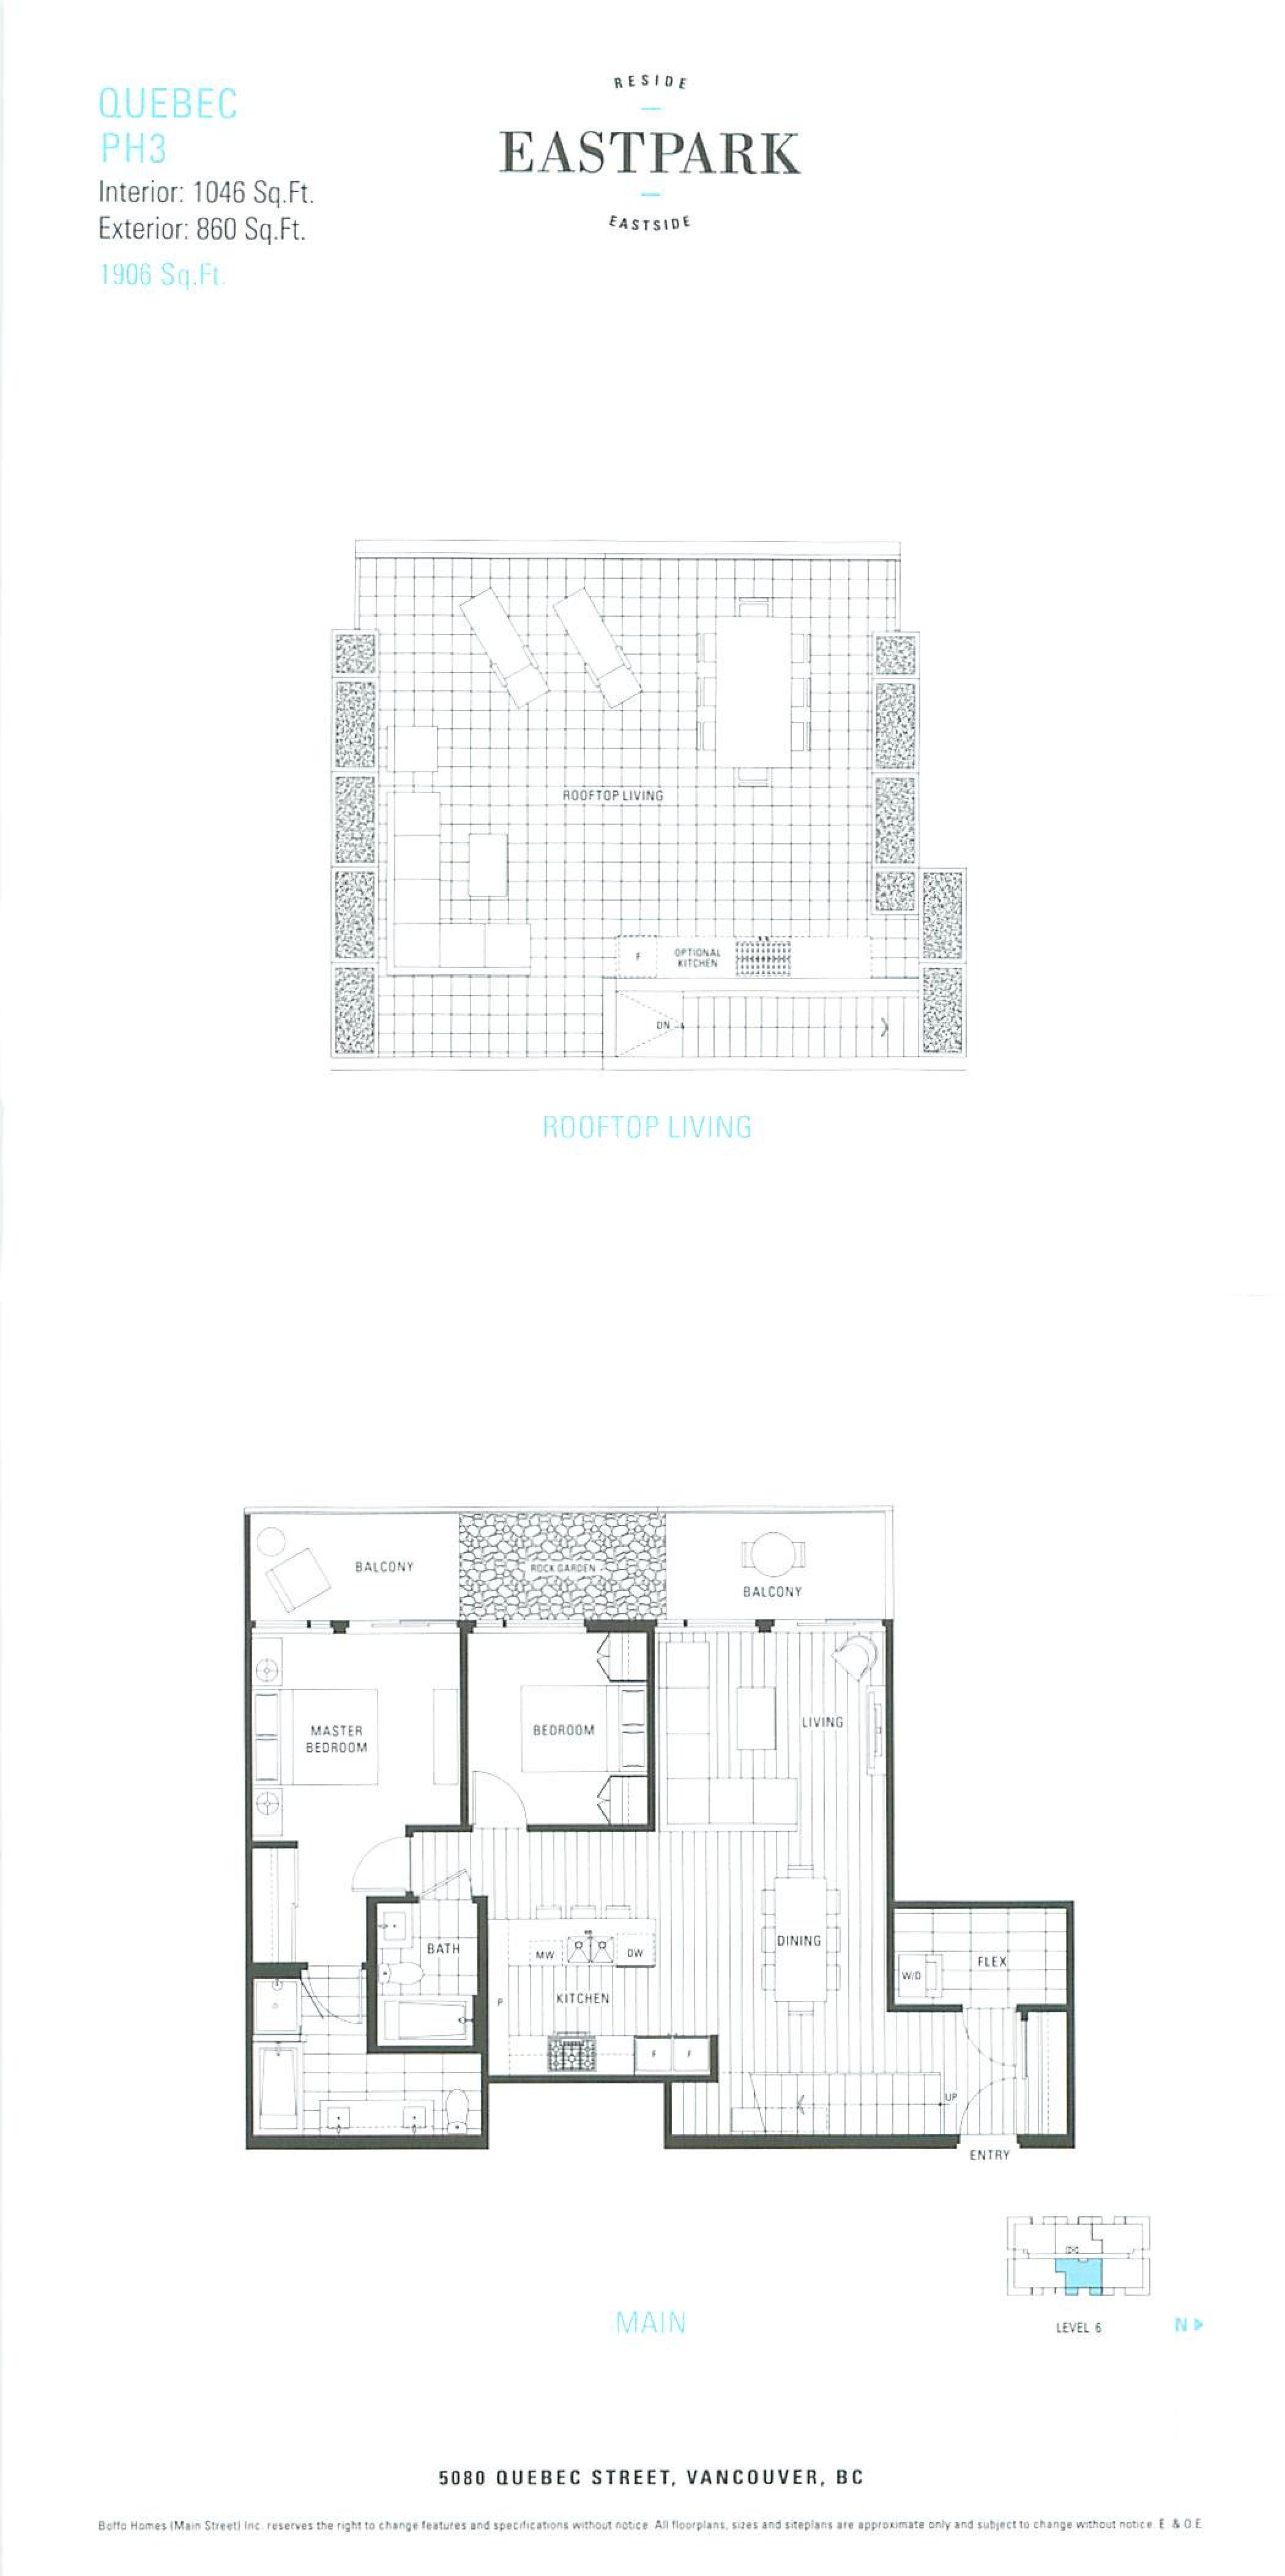 EastPark Quebec Larger Floor Plans Mike Stewart-page-003